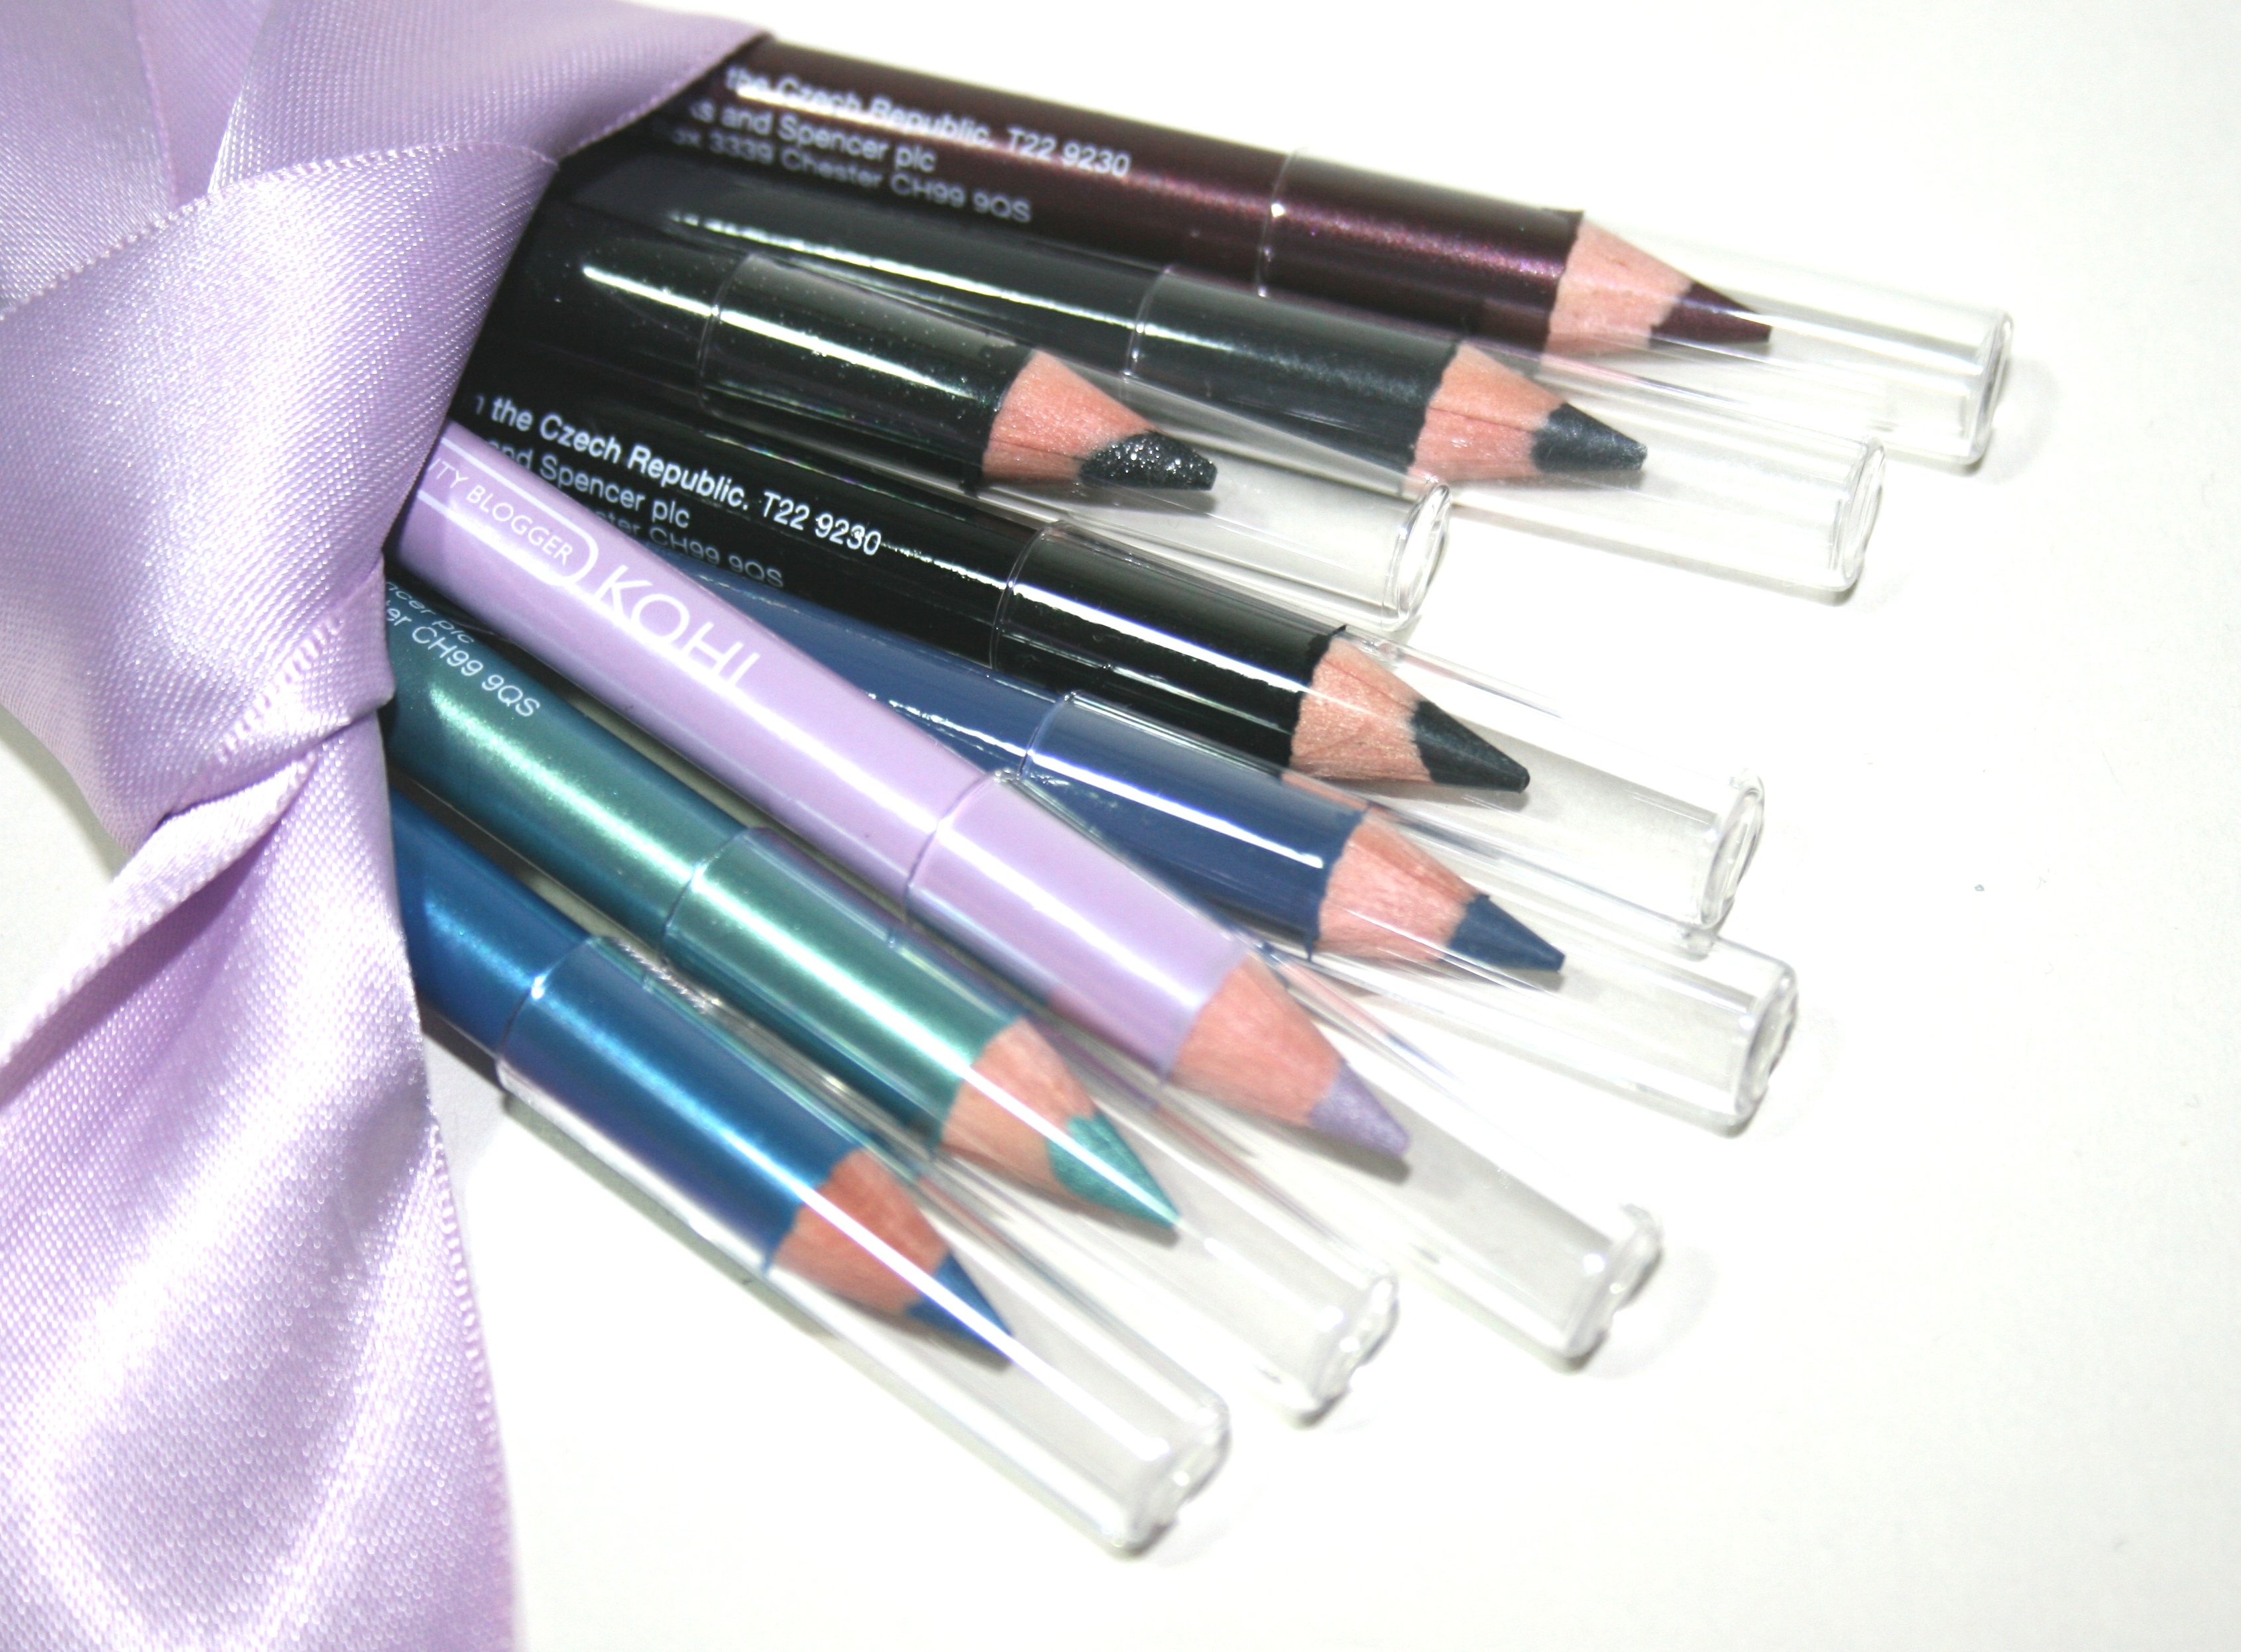 British Beauty Blogger / Marks & Spencer Eye Pencil Kit